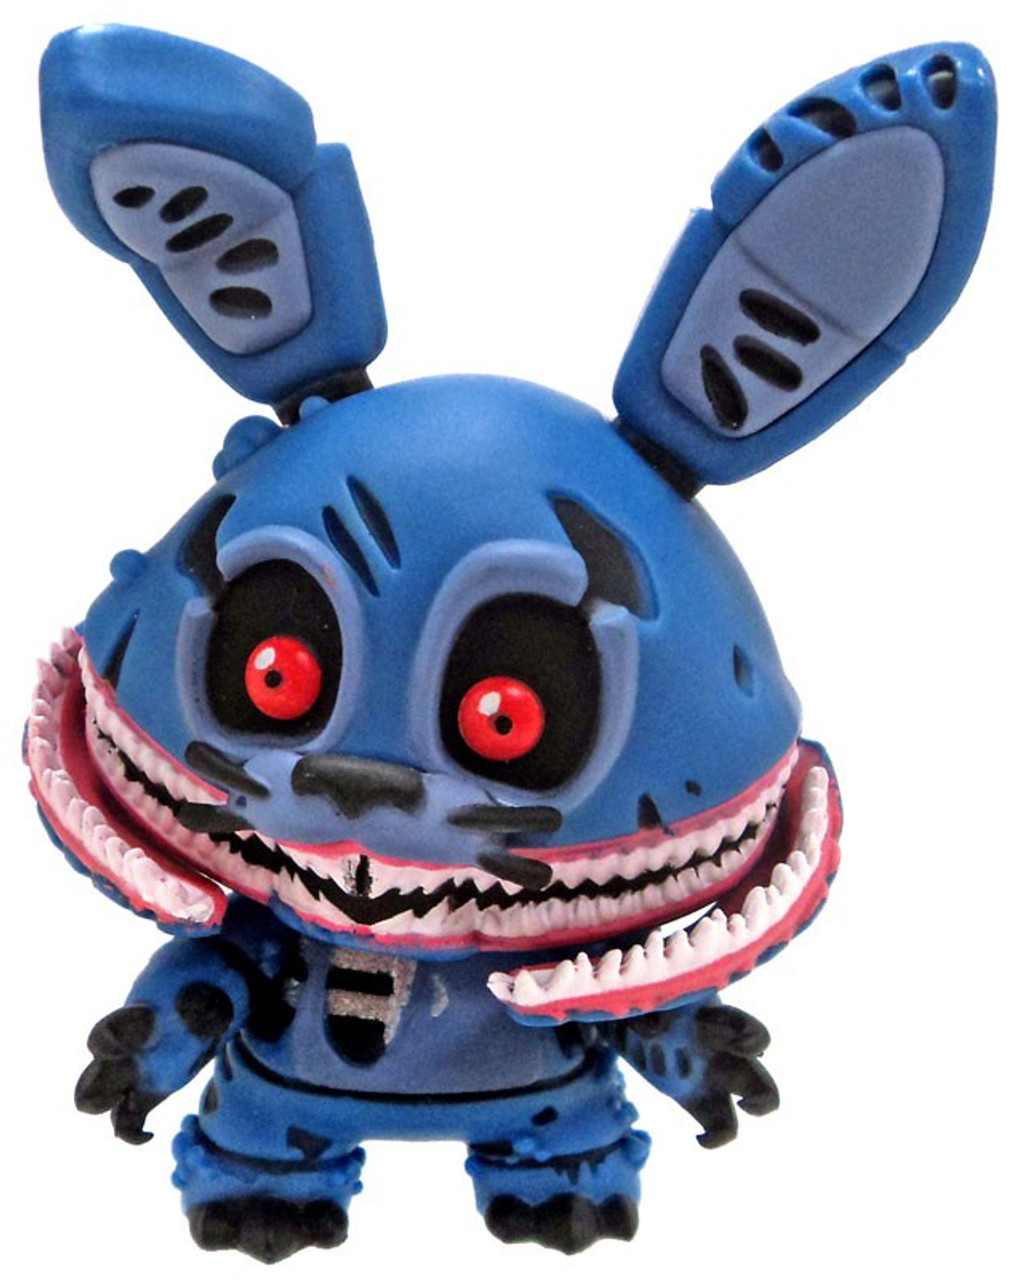 Funko Five Nights at Freddy's The Twisted Ones & Sister Location Twisted  Bonnie 1/6 Mystery Minifigure [Loose]